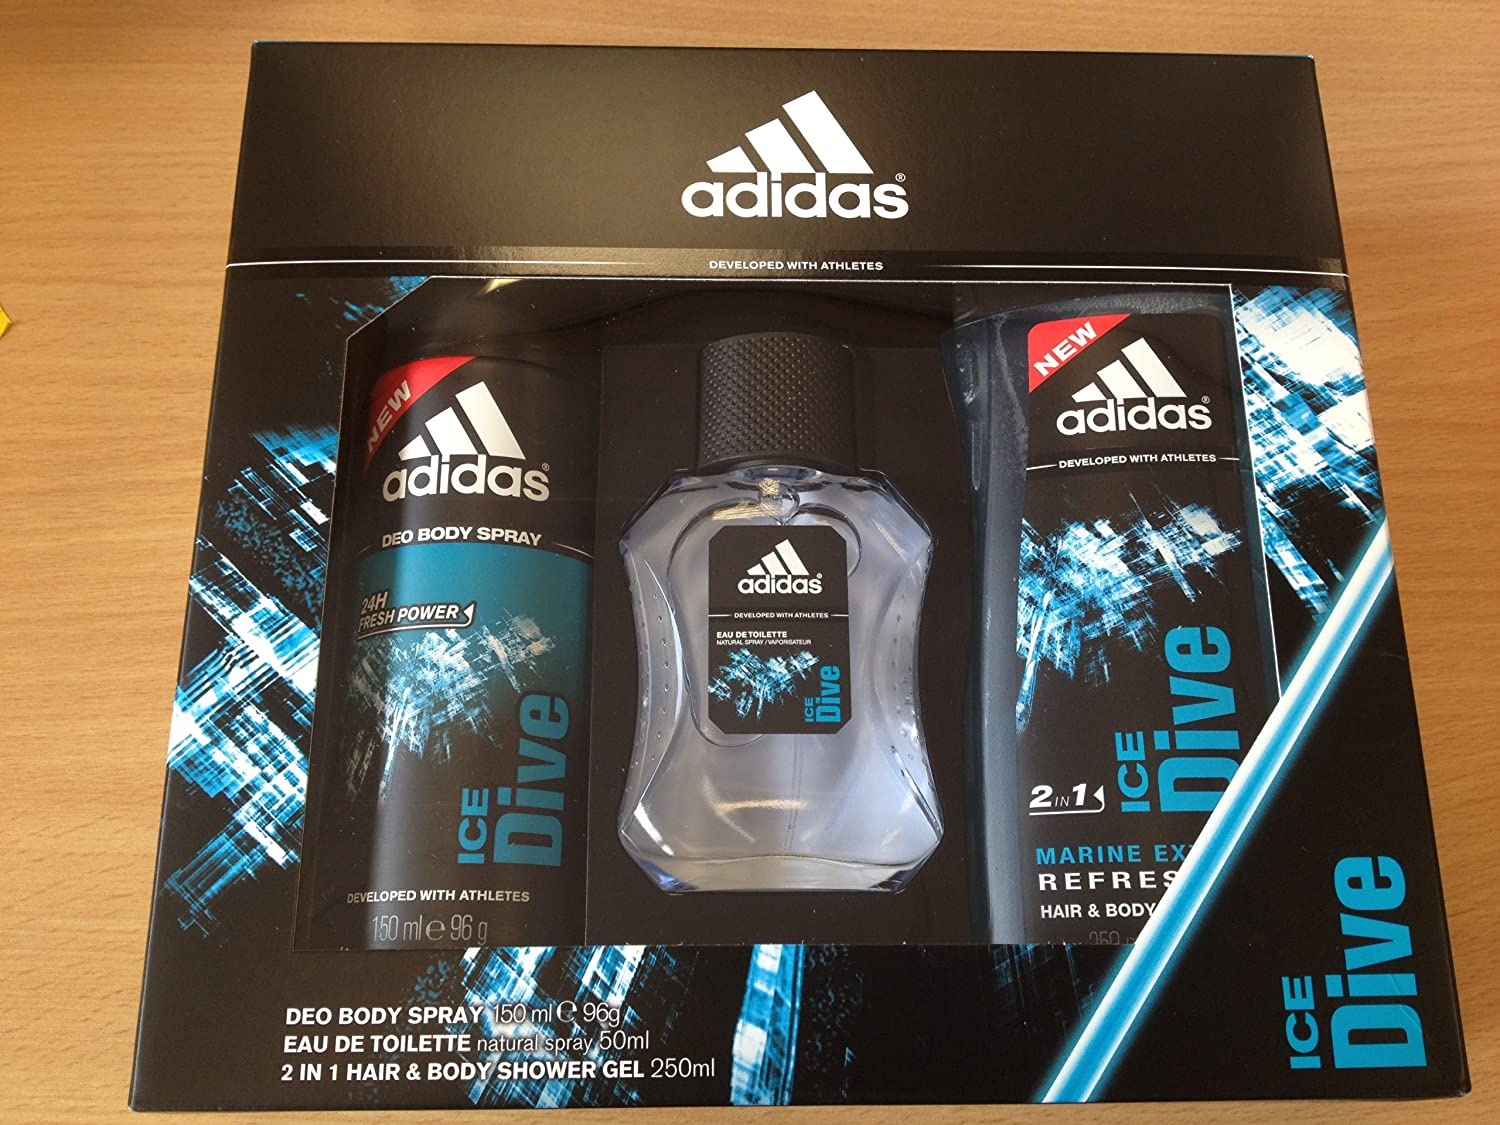 Adidas ICE DIVE Trio Gift Set 50ml EDT / Deo Body Spray 150ml / 2 in 1 Hair & Body Shower Gel 25